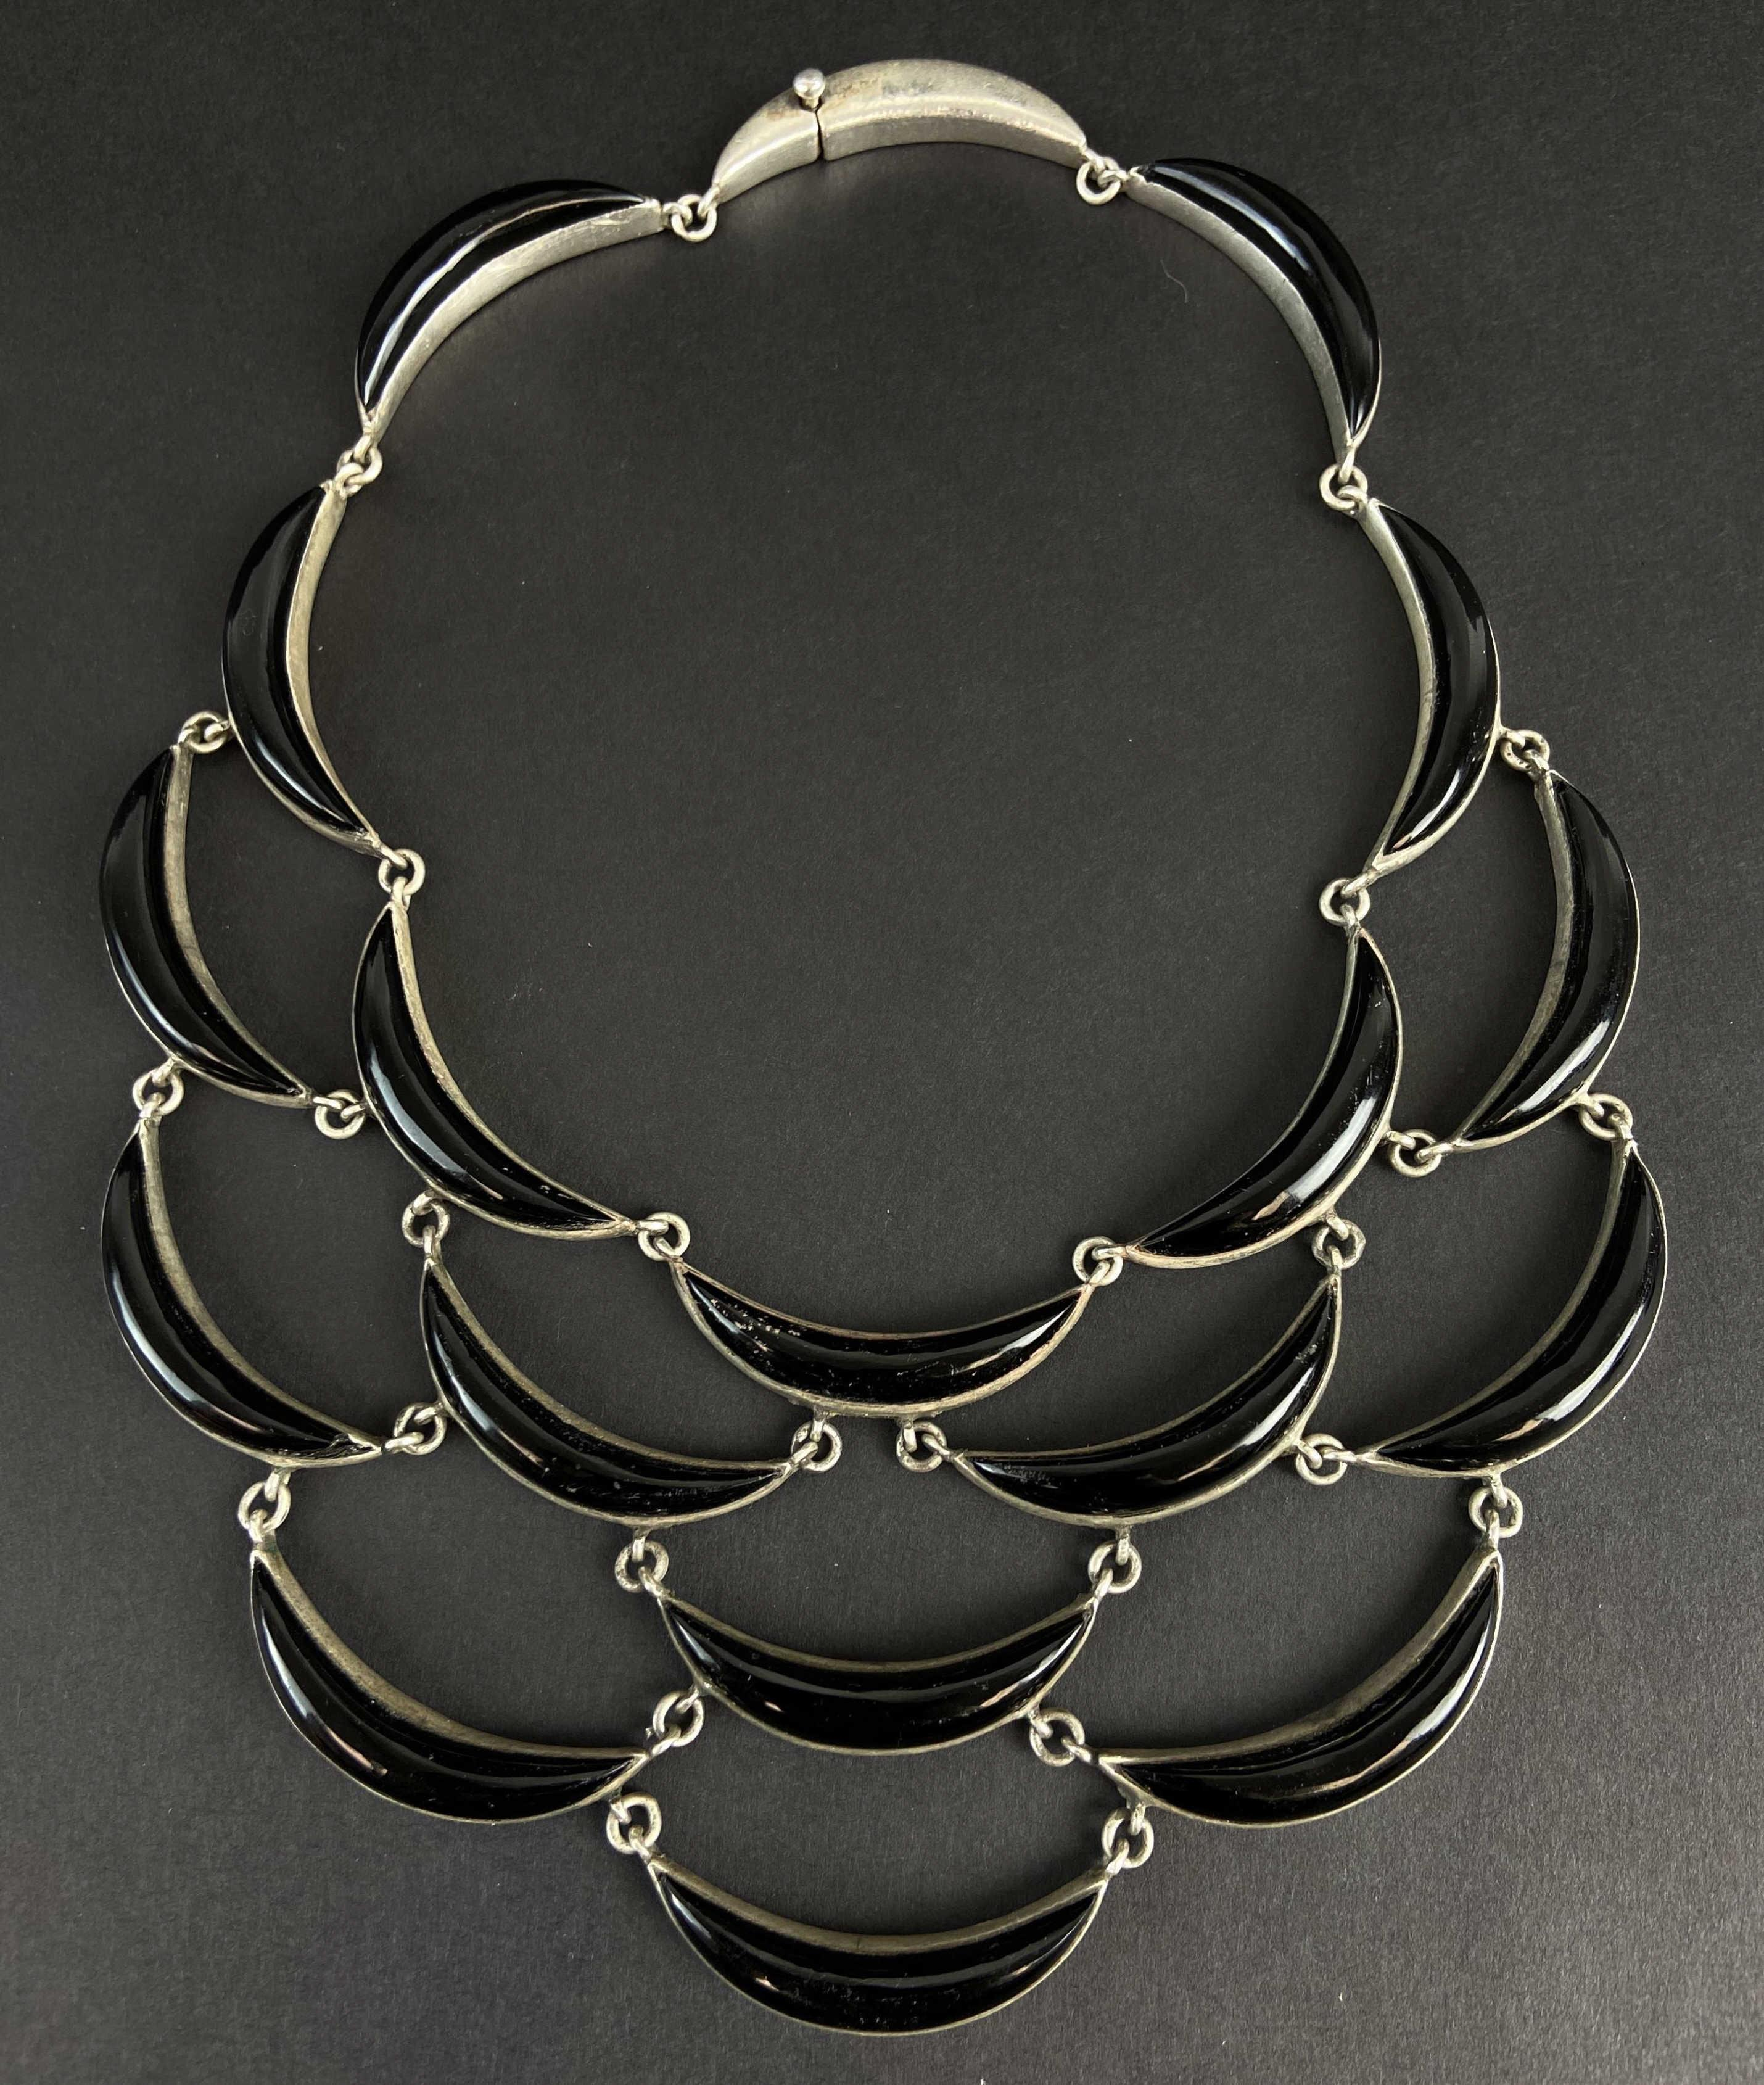 c.1970 Taxco Mexican Sterling Silver Necklace